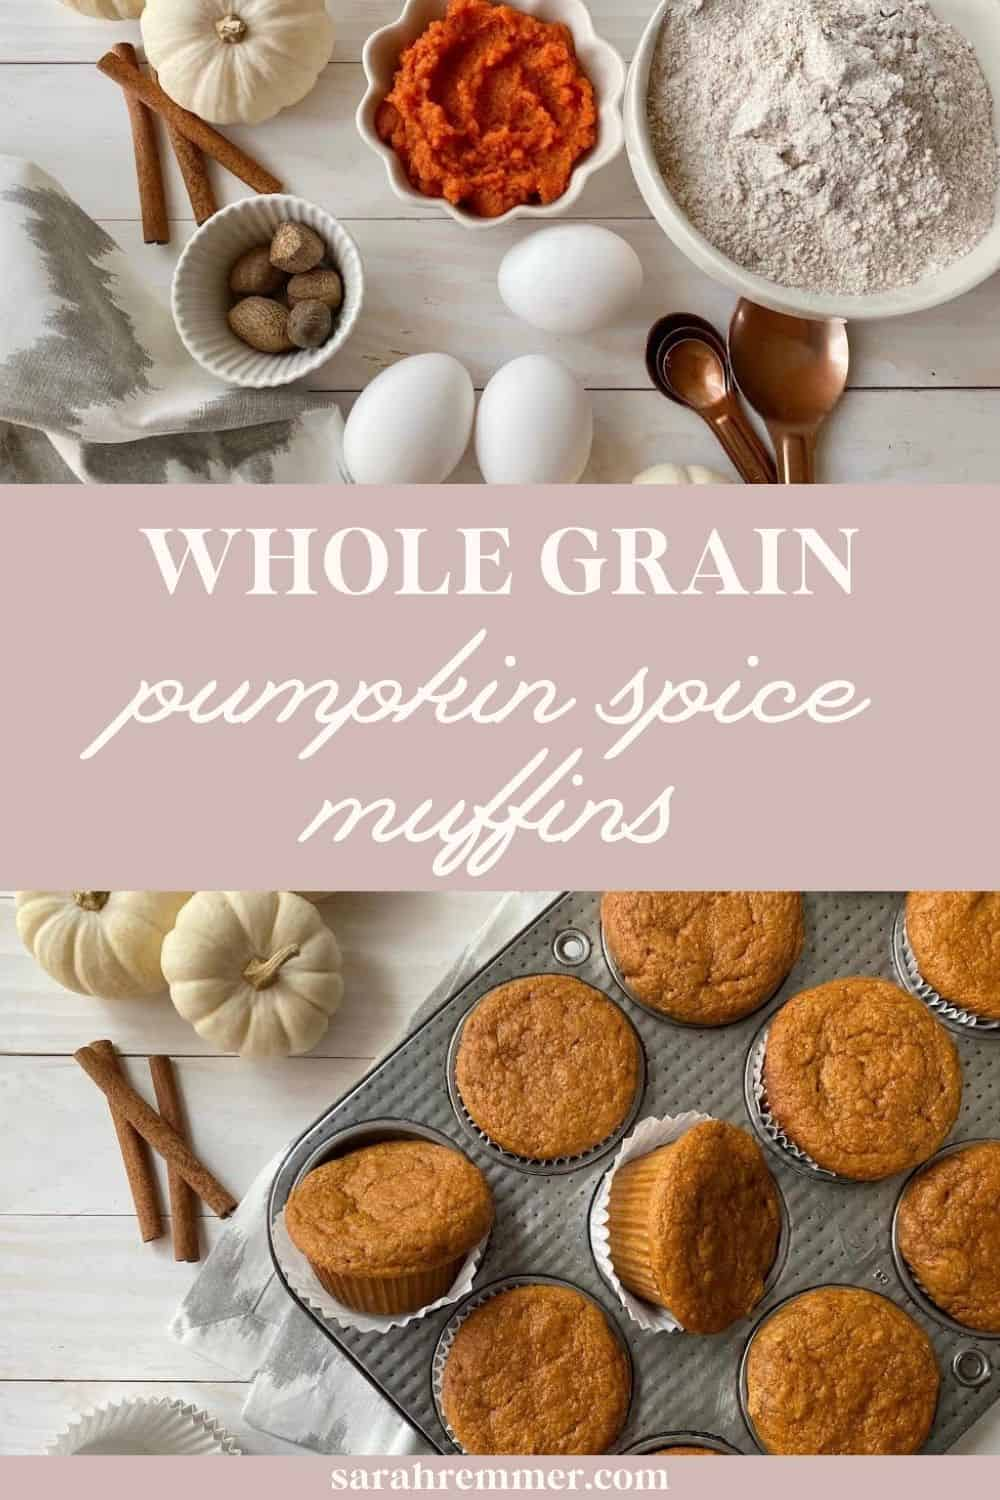 These pumpkin spice muffins are perfect for cozy fall days. They're made with bran cereal which bumps up the fibre content!